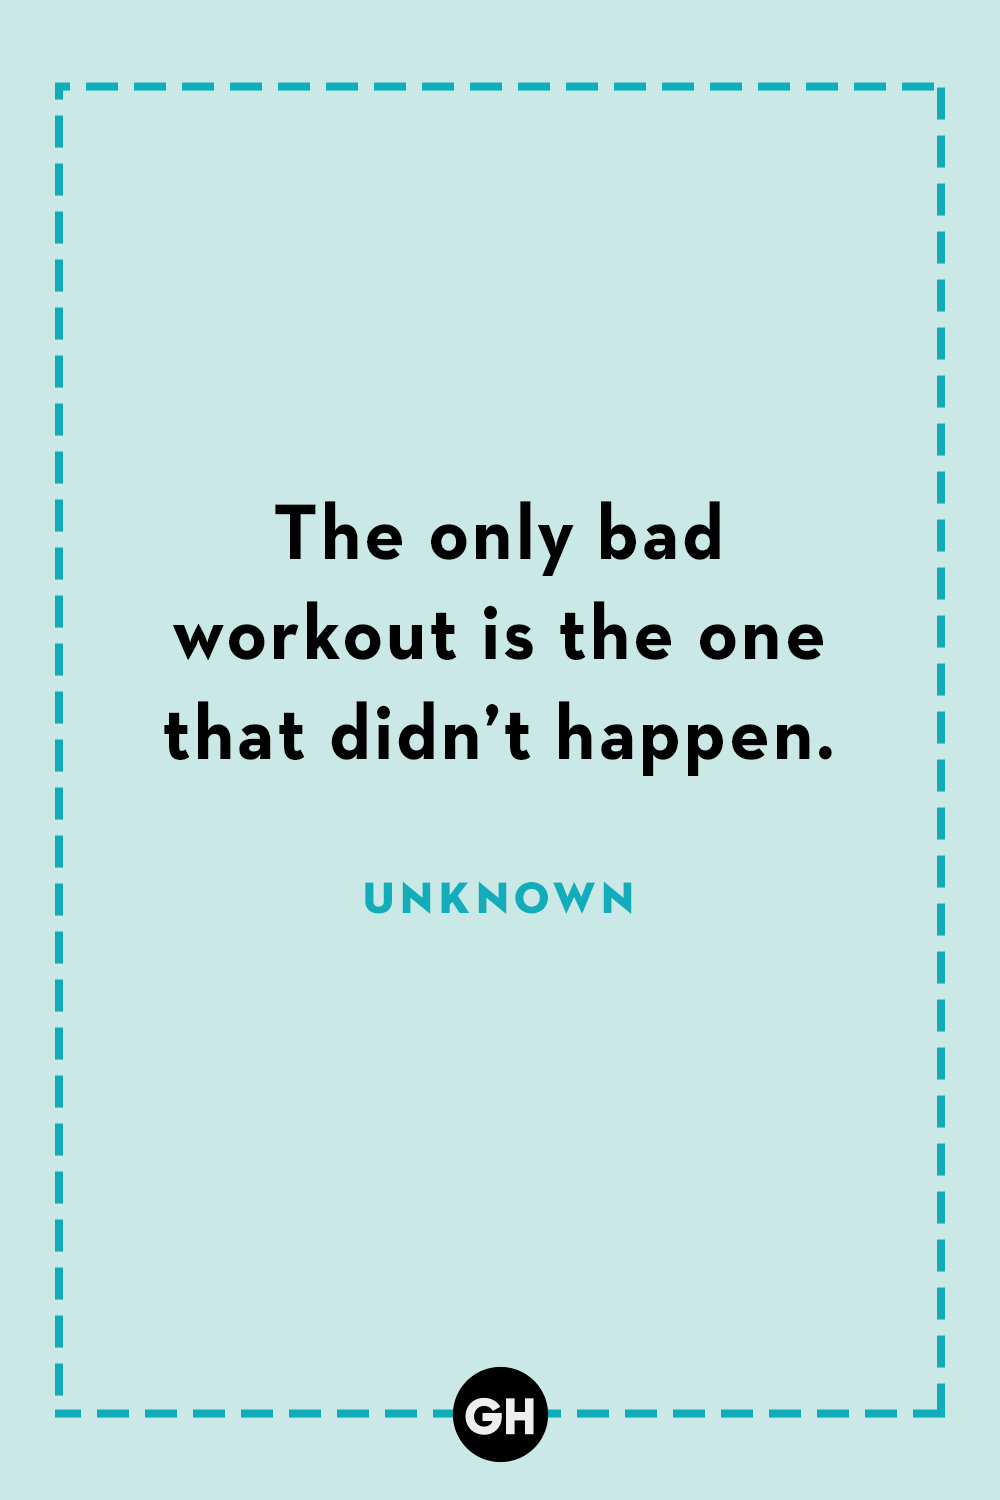 20 Best Workout Quotes   Motivational Fitness Quotes and Sayings